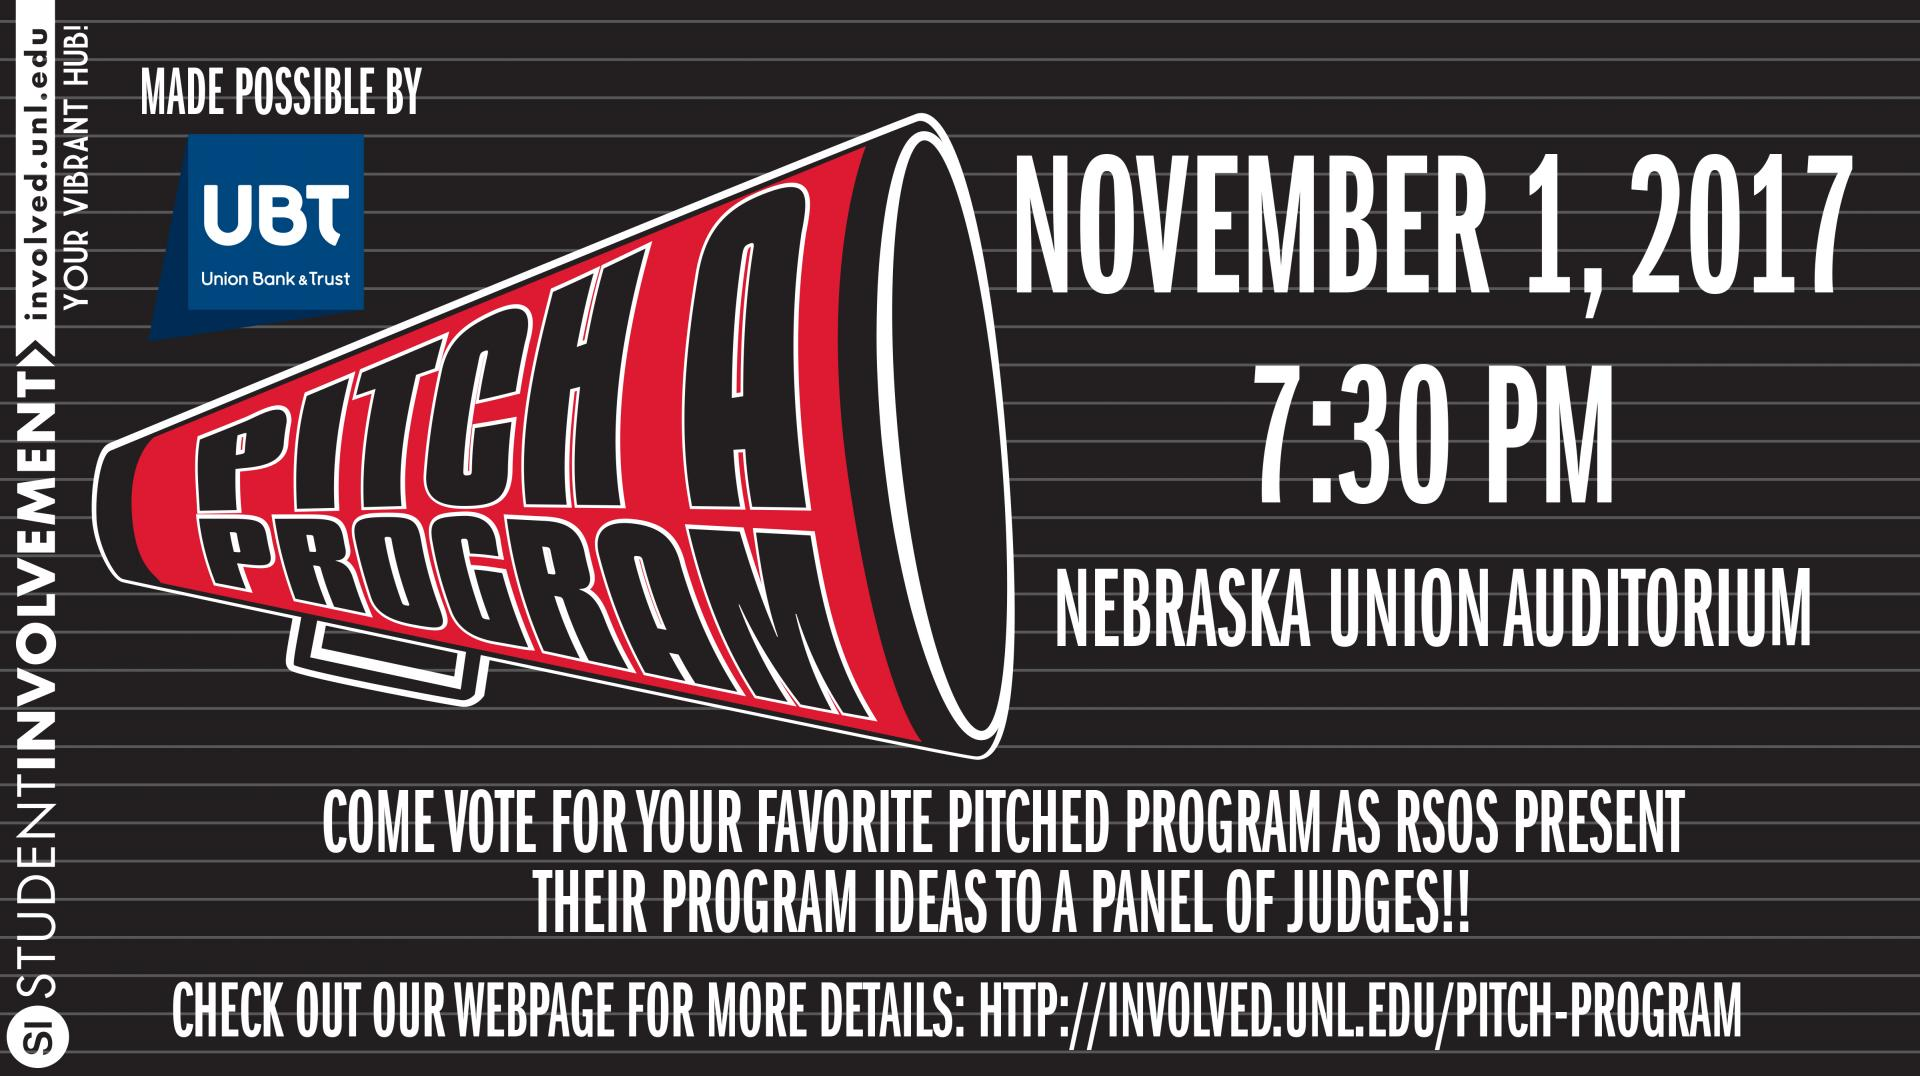 Come watch the Pitch-a-Program Finals